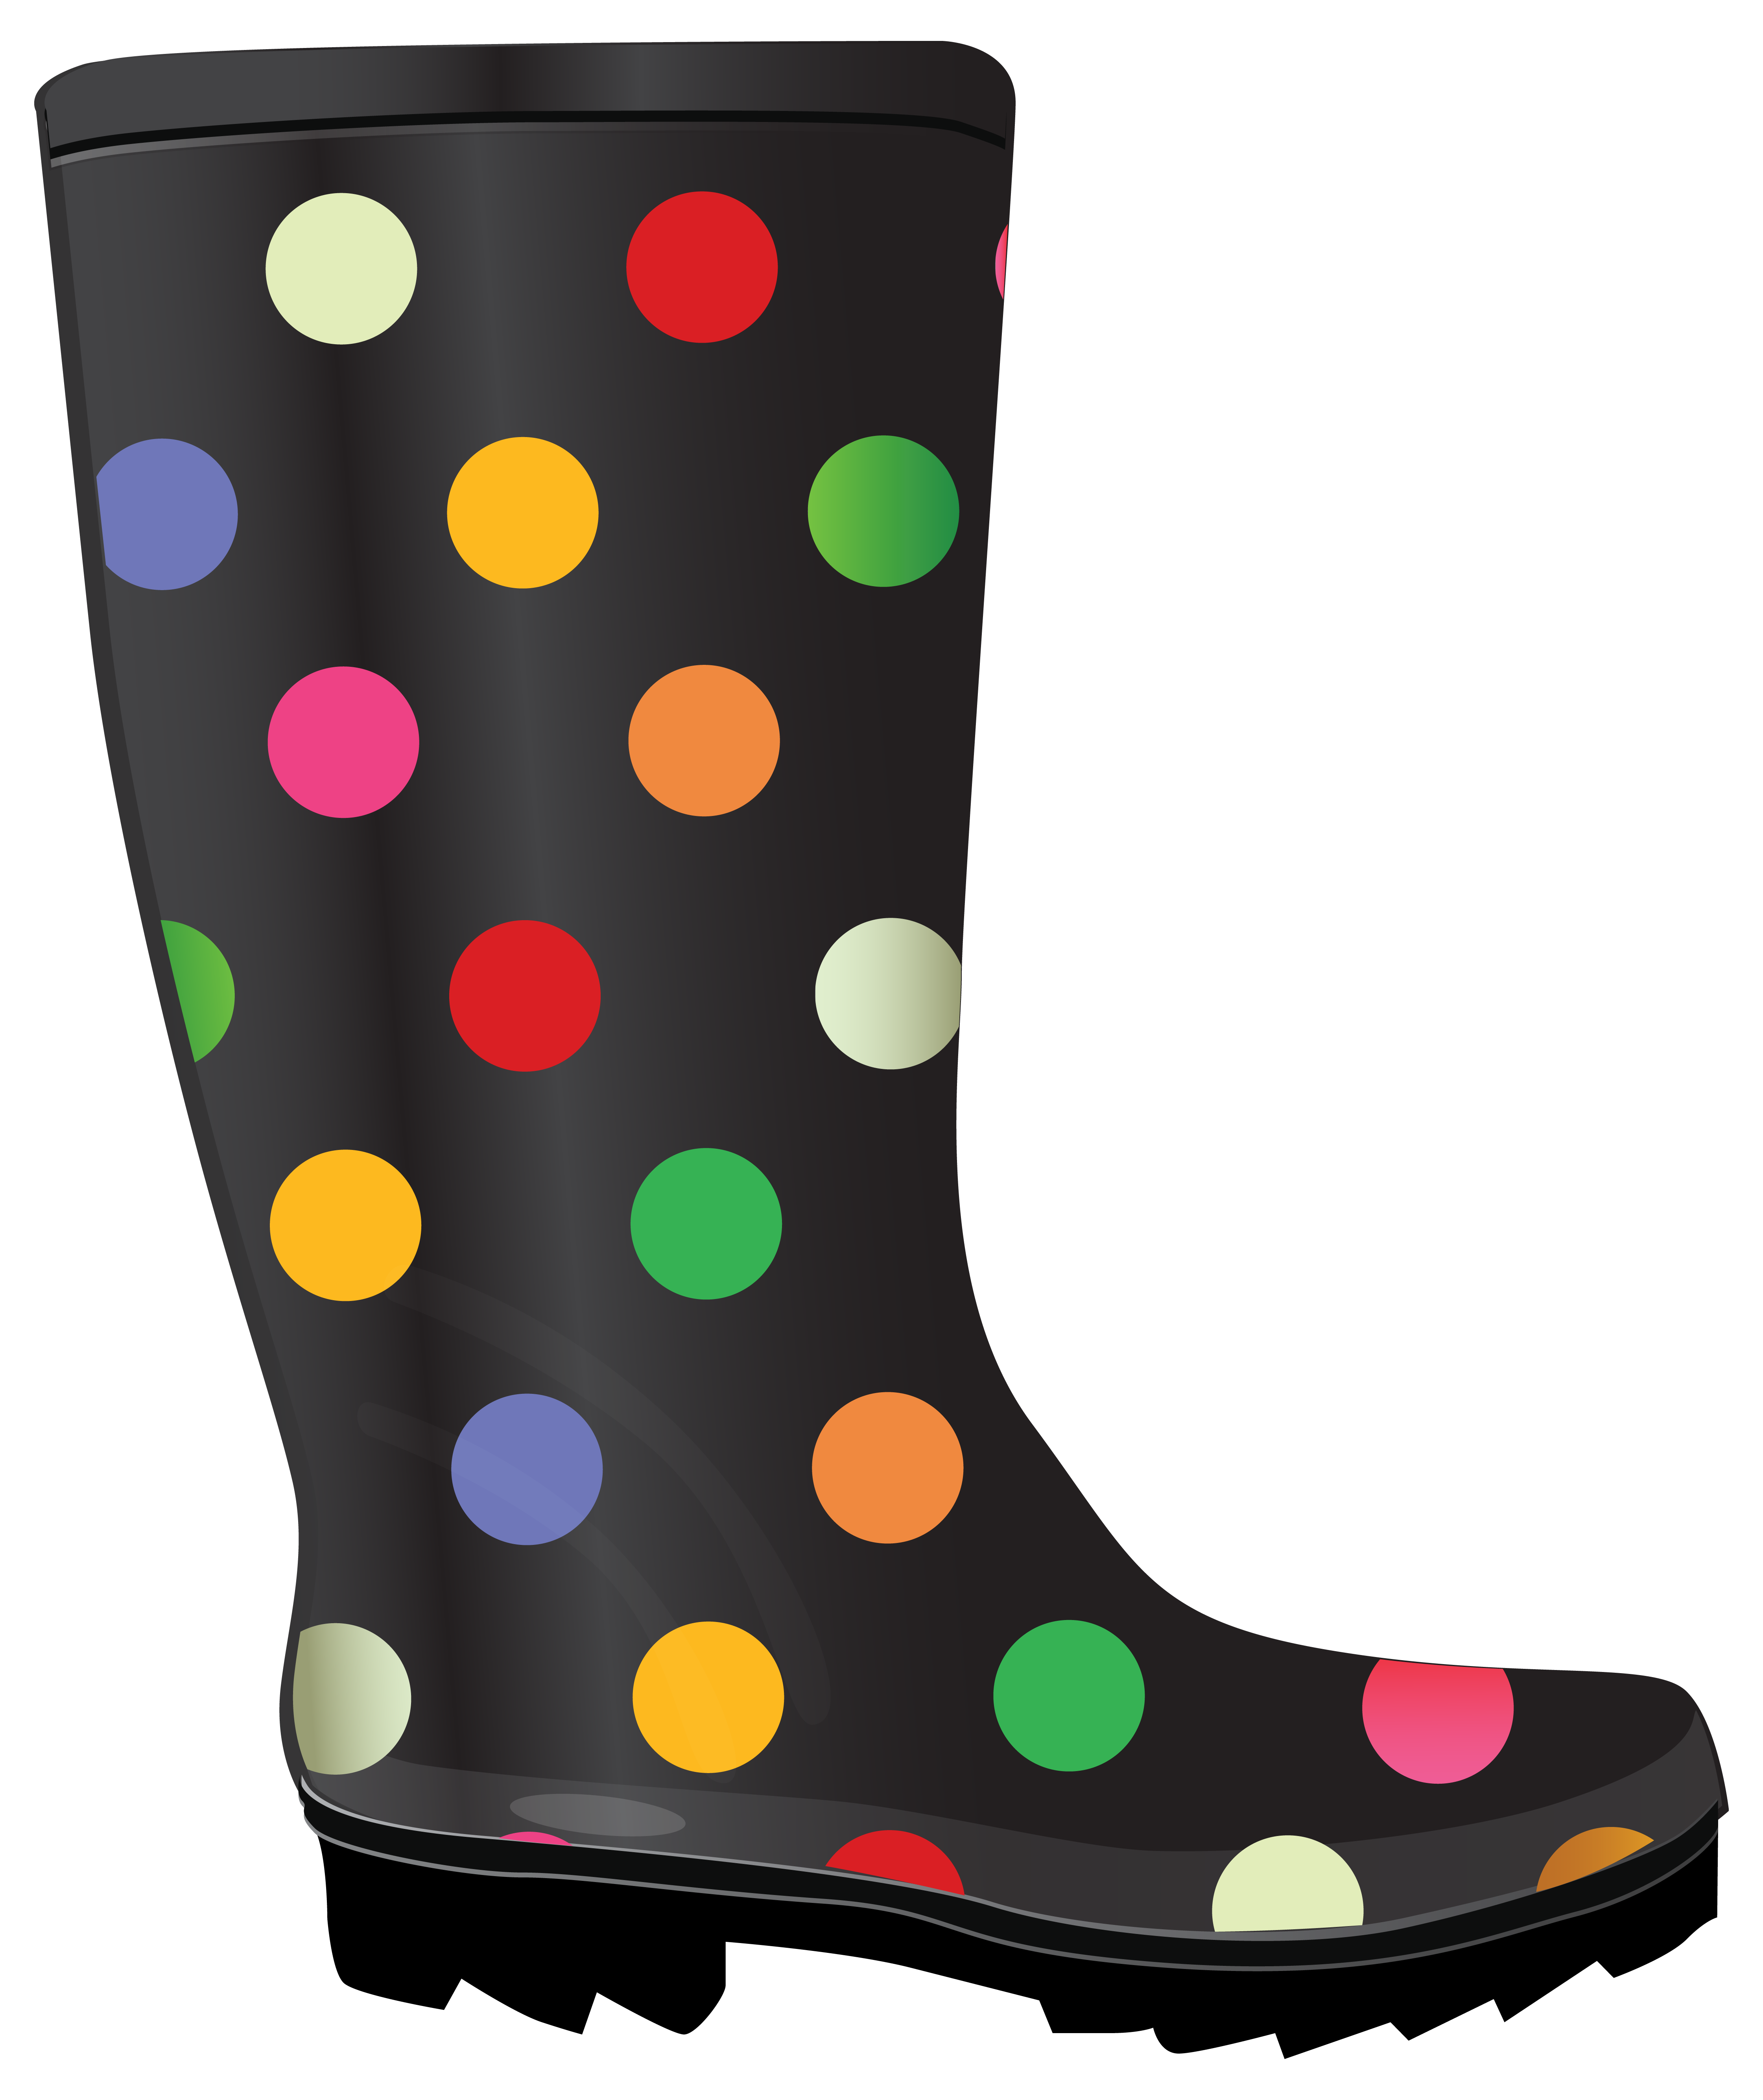 Wet clipart rain boot. Dotted rubber boots png